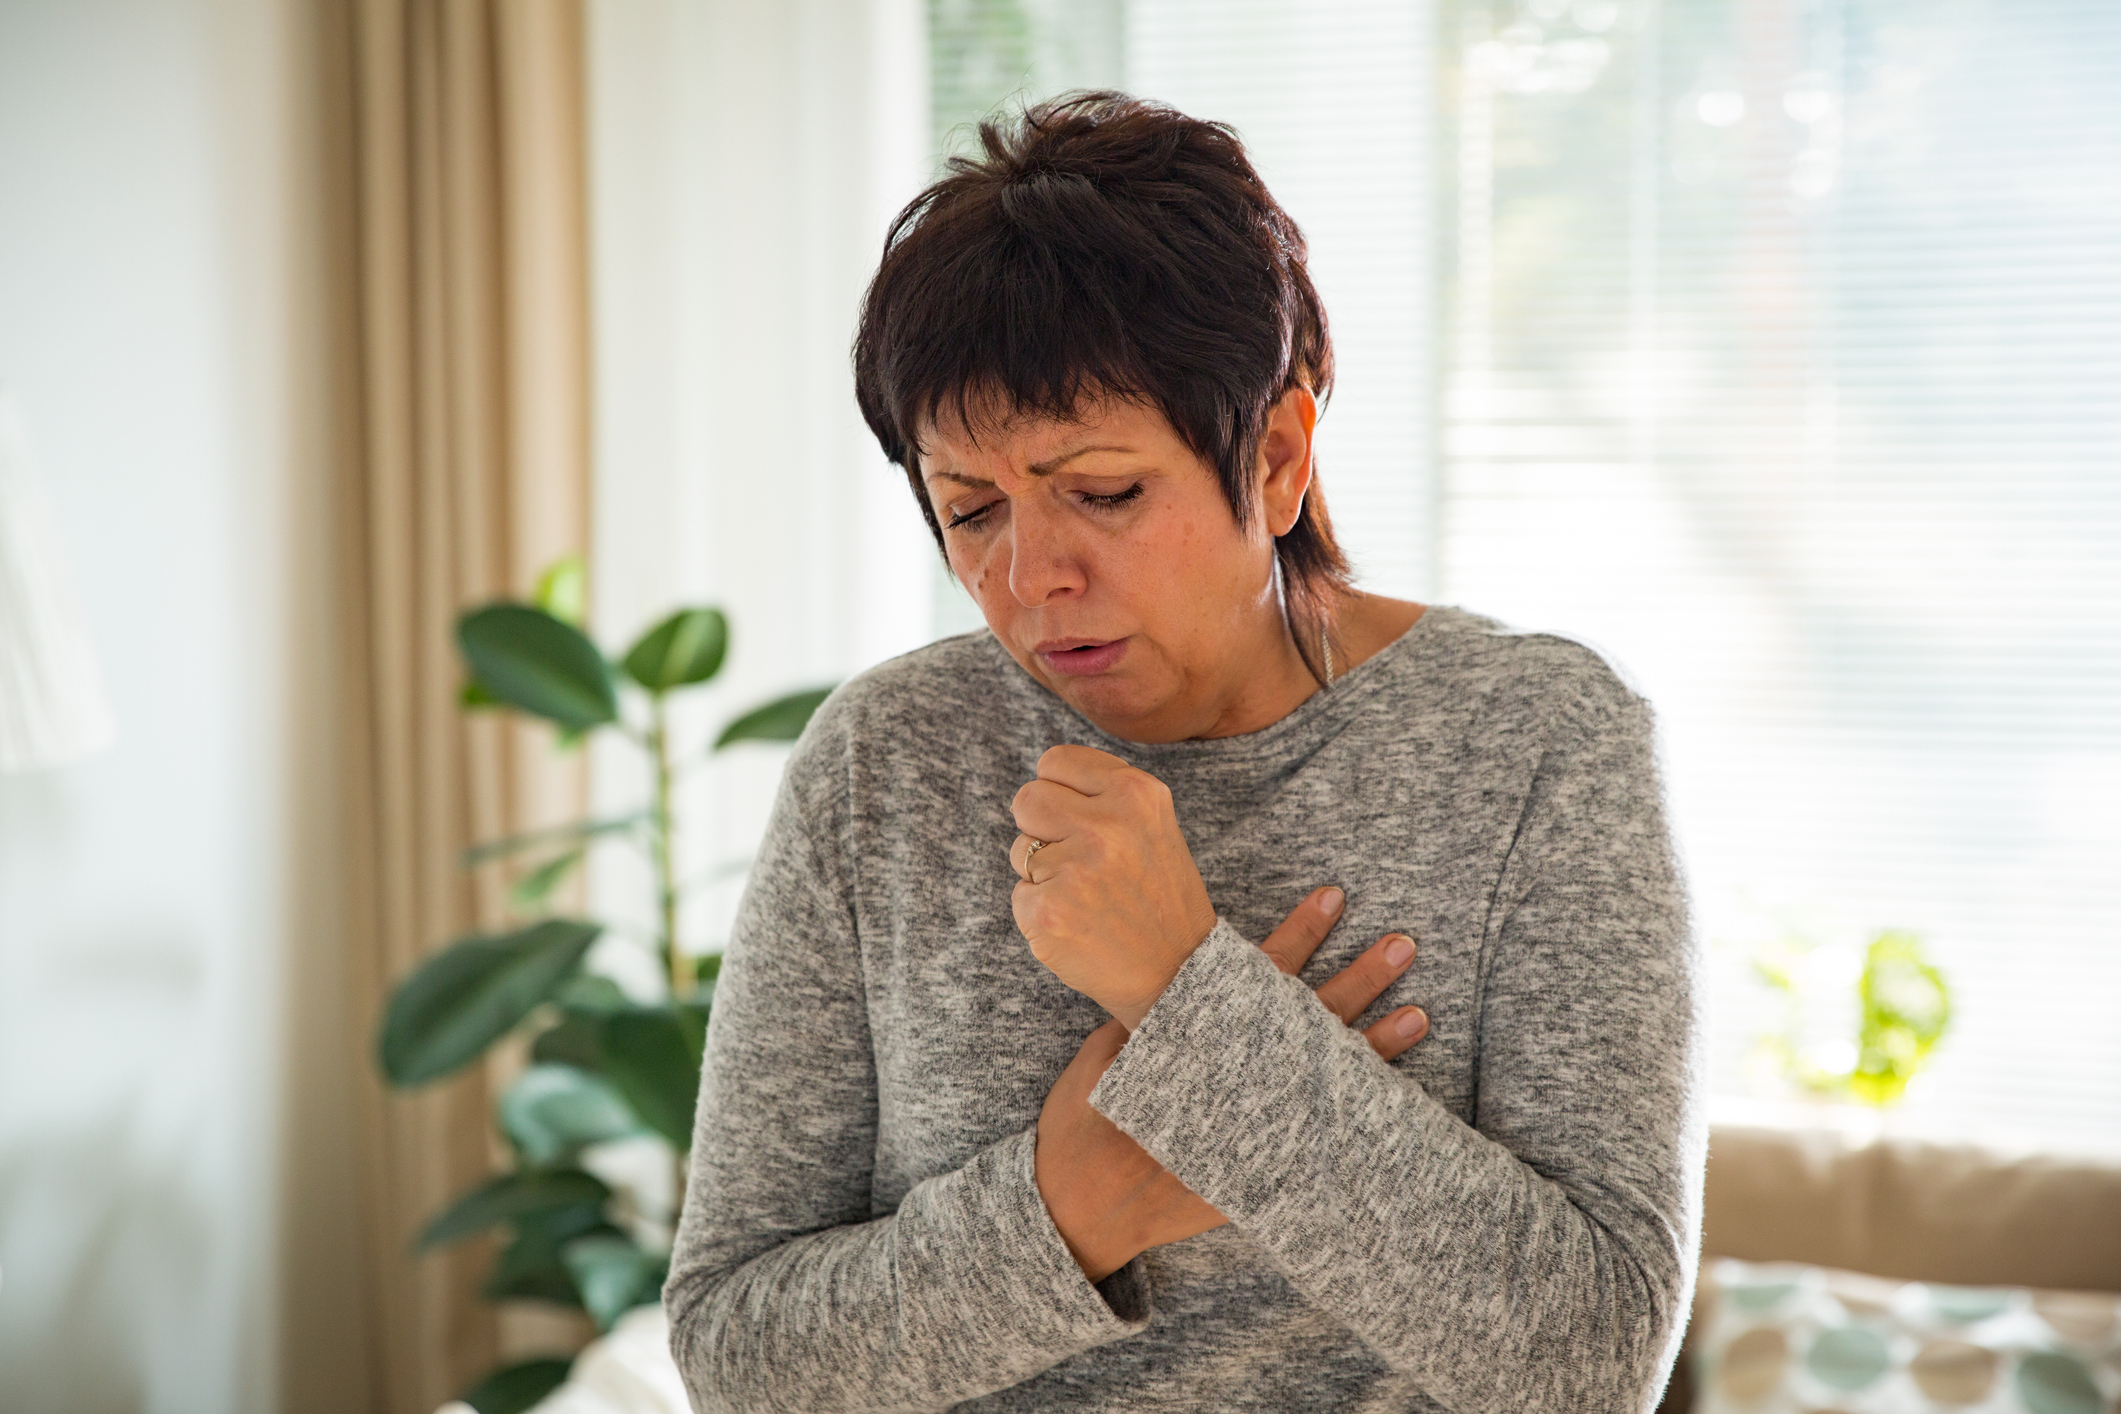 woman coughing, holding chest